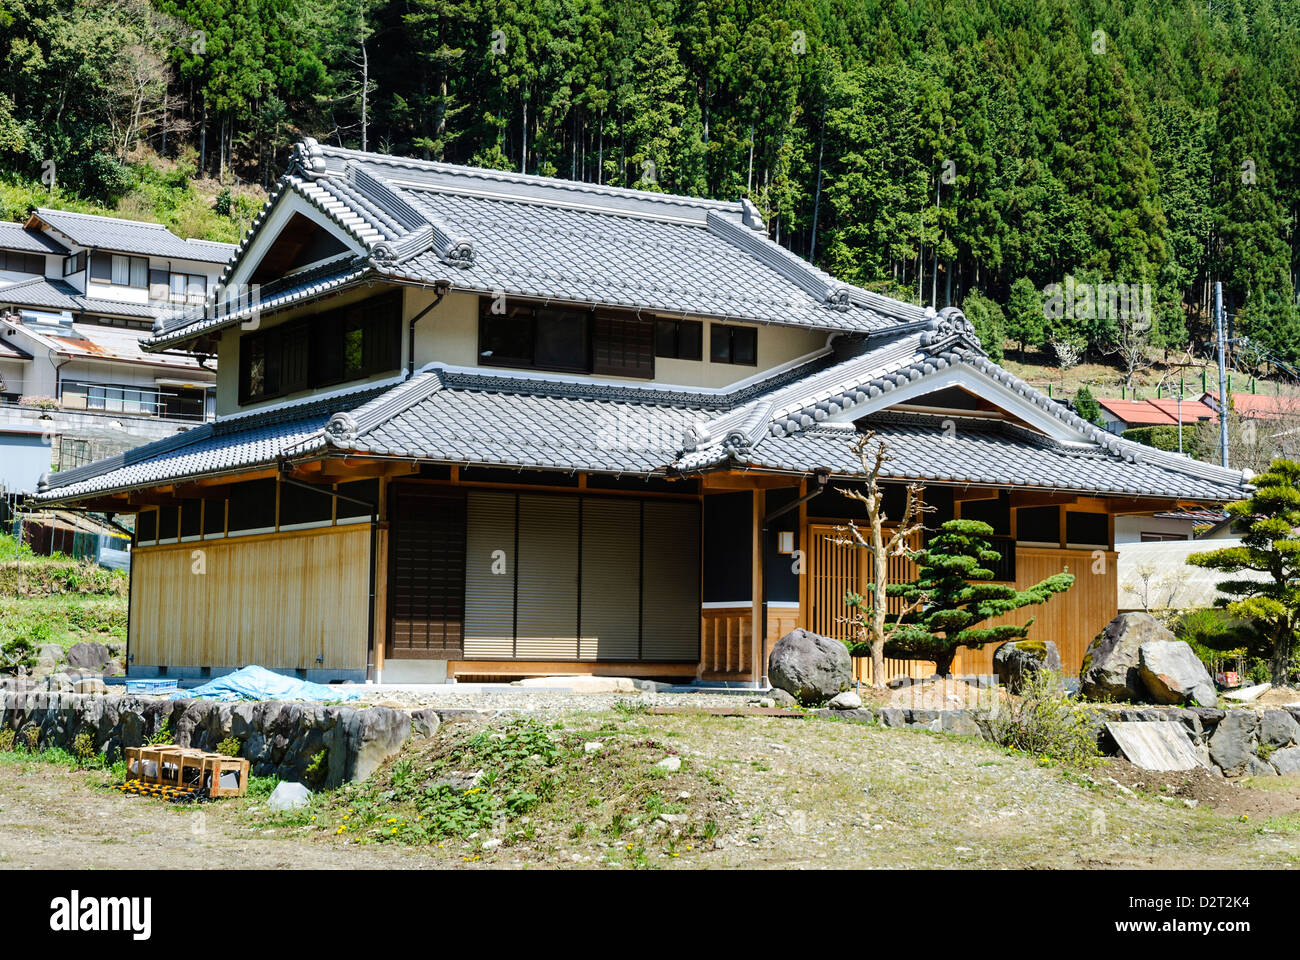 Old Wooden Japanese House In A Village Deep In The Rural